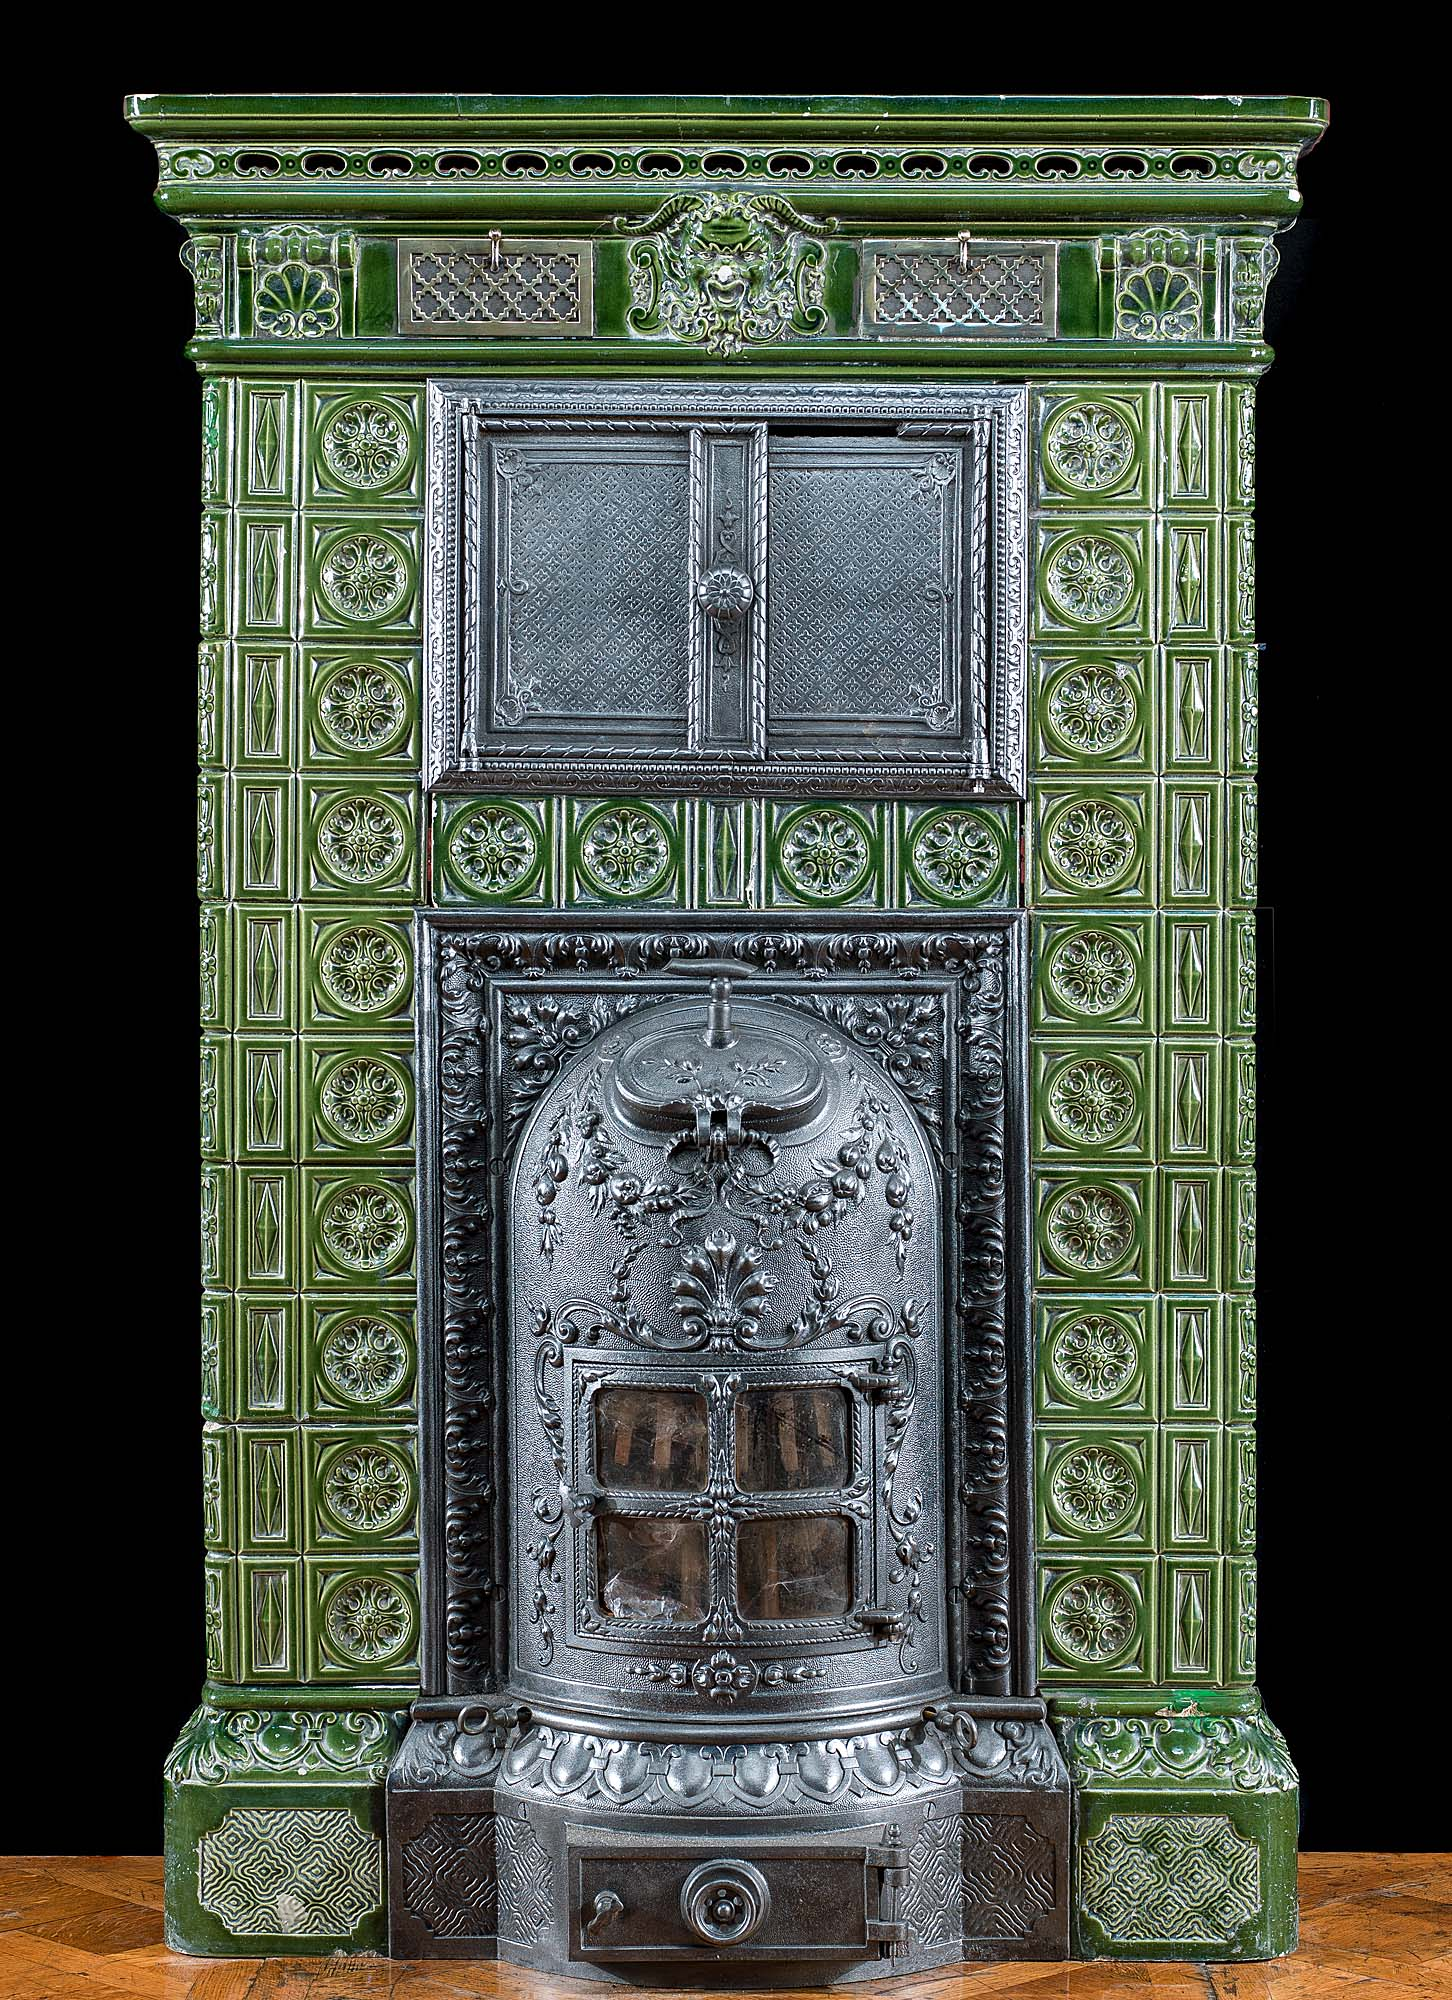 A ceramic French green glazed cast iron stove